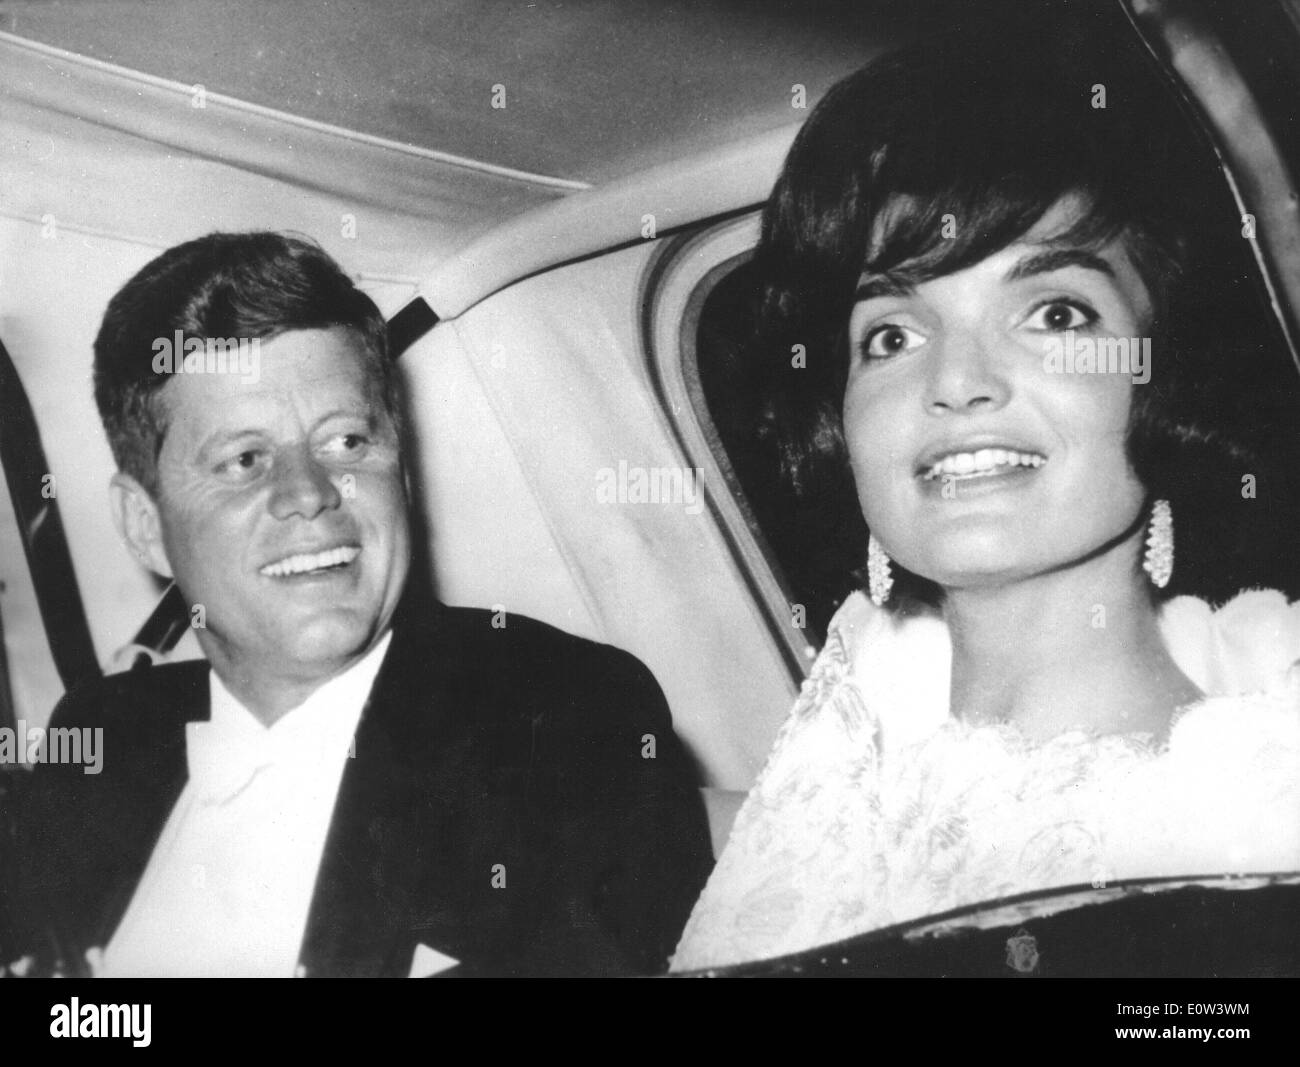 President Kennedy and wife Jackie on a State visit to Paris - Stock Image